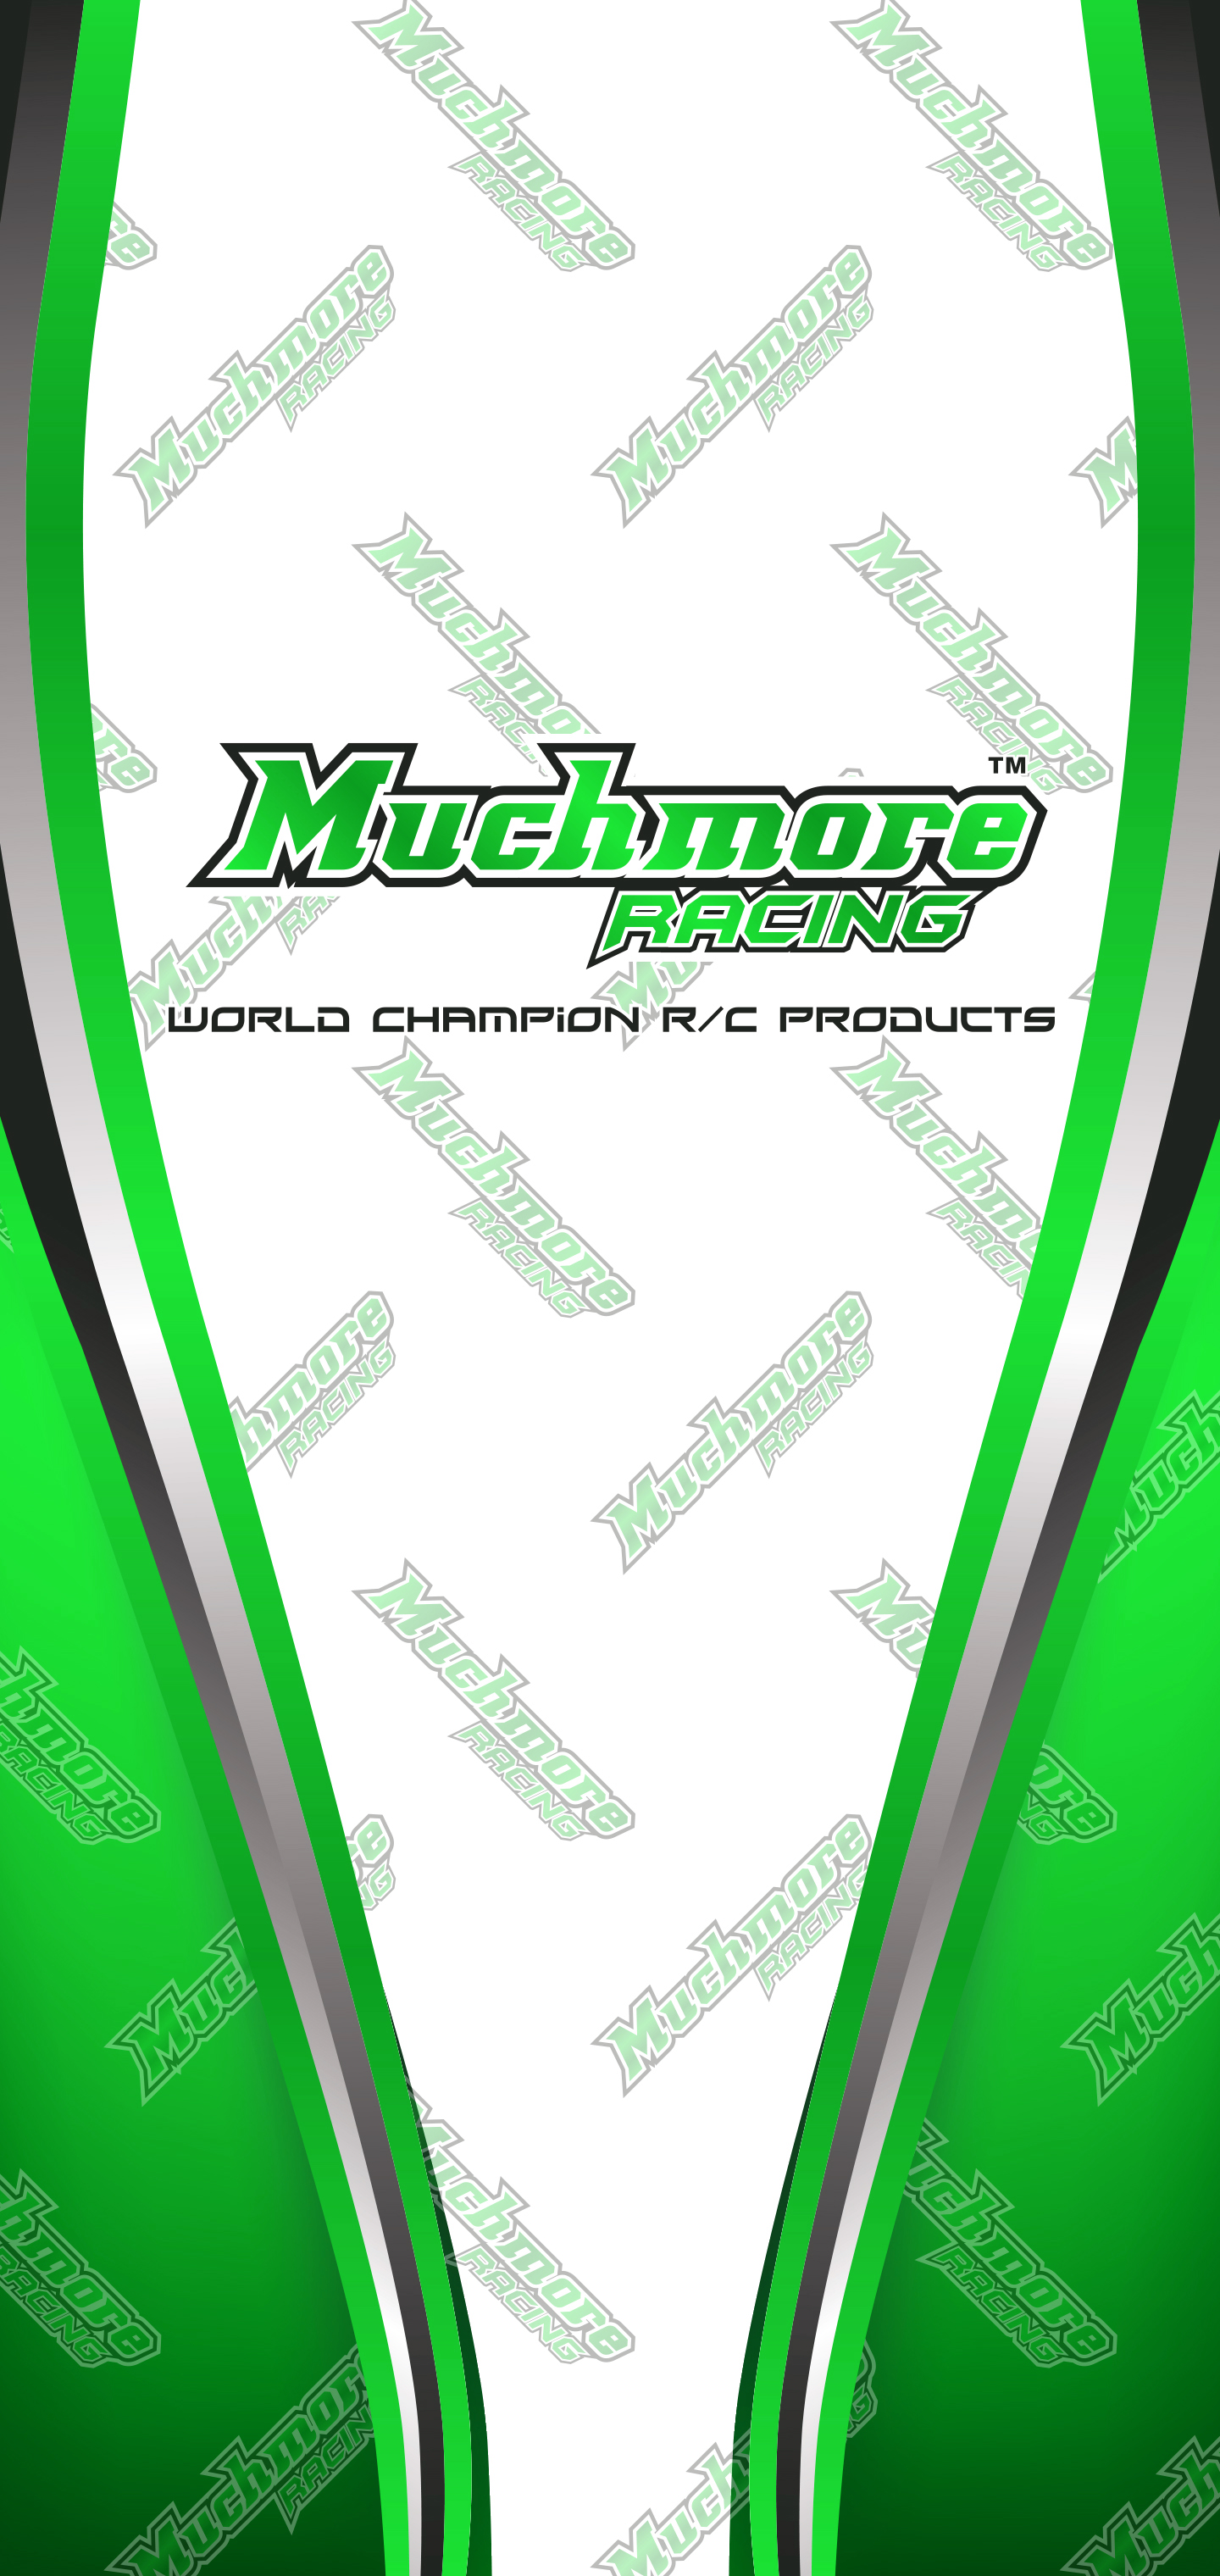 MuchmoreRacing_Wallpaper_Green_Ver_Samsung-Galaxy-19by9-ratio.JPG